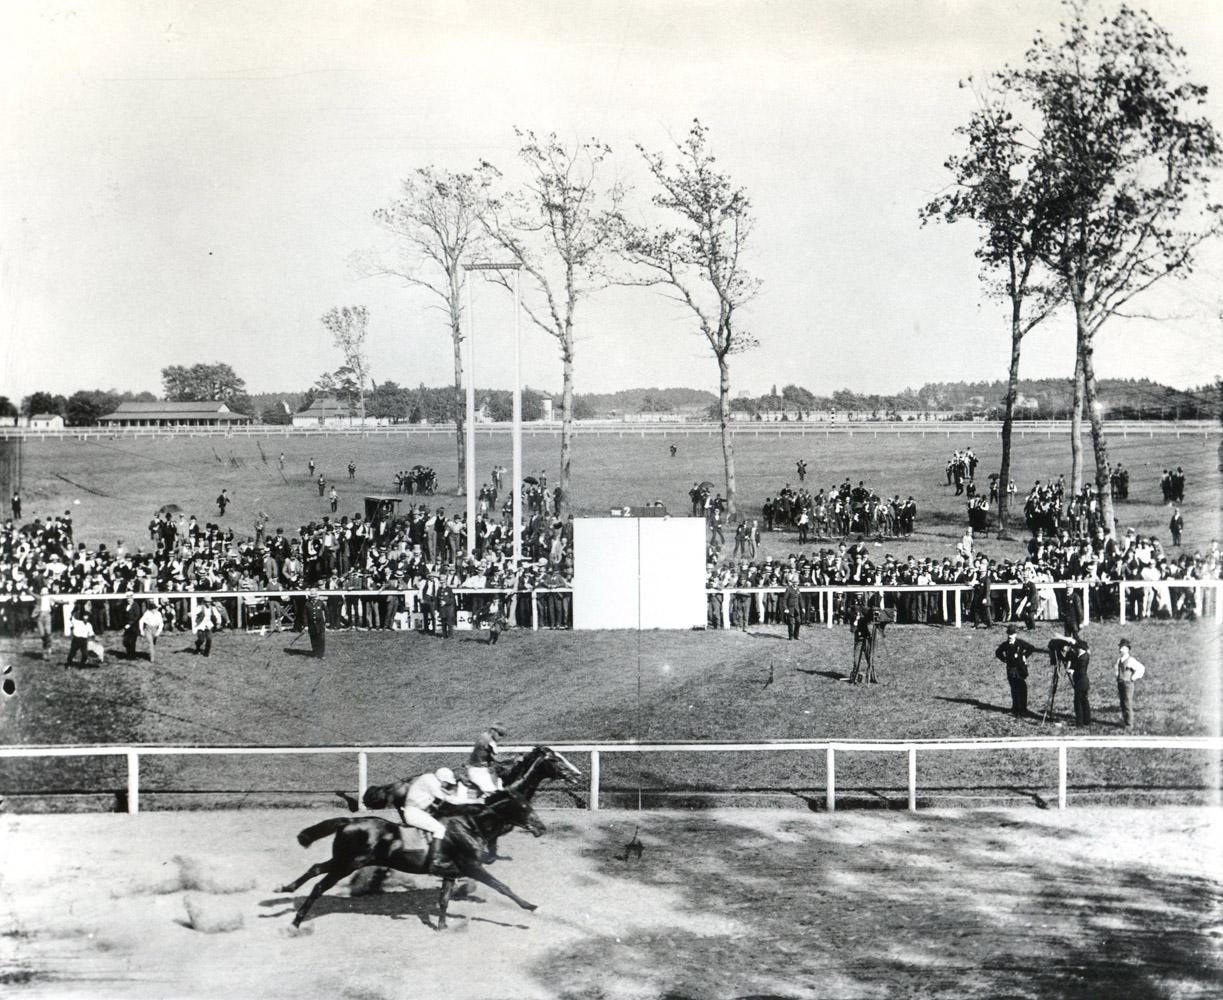 Salvator (Isaac Murphy up) defeating Tenny (Snapper Garrison up) in their famous match race at Sheepshead Bay in 1890 (Keeneland Library Hemment Collection/Museum Collection)